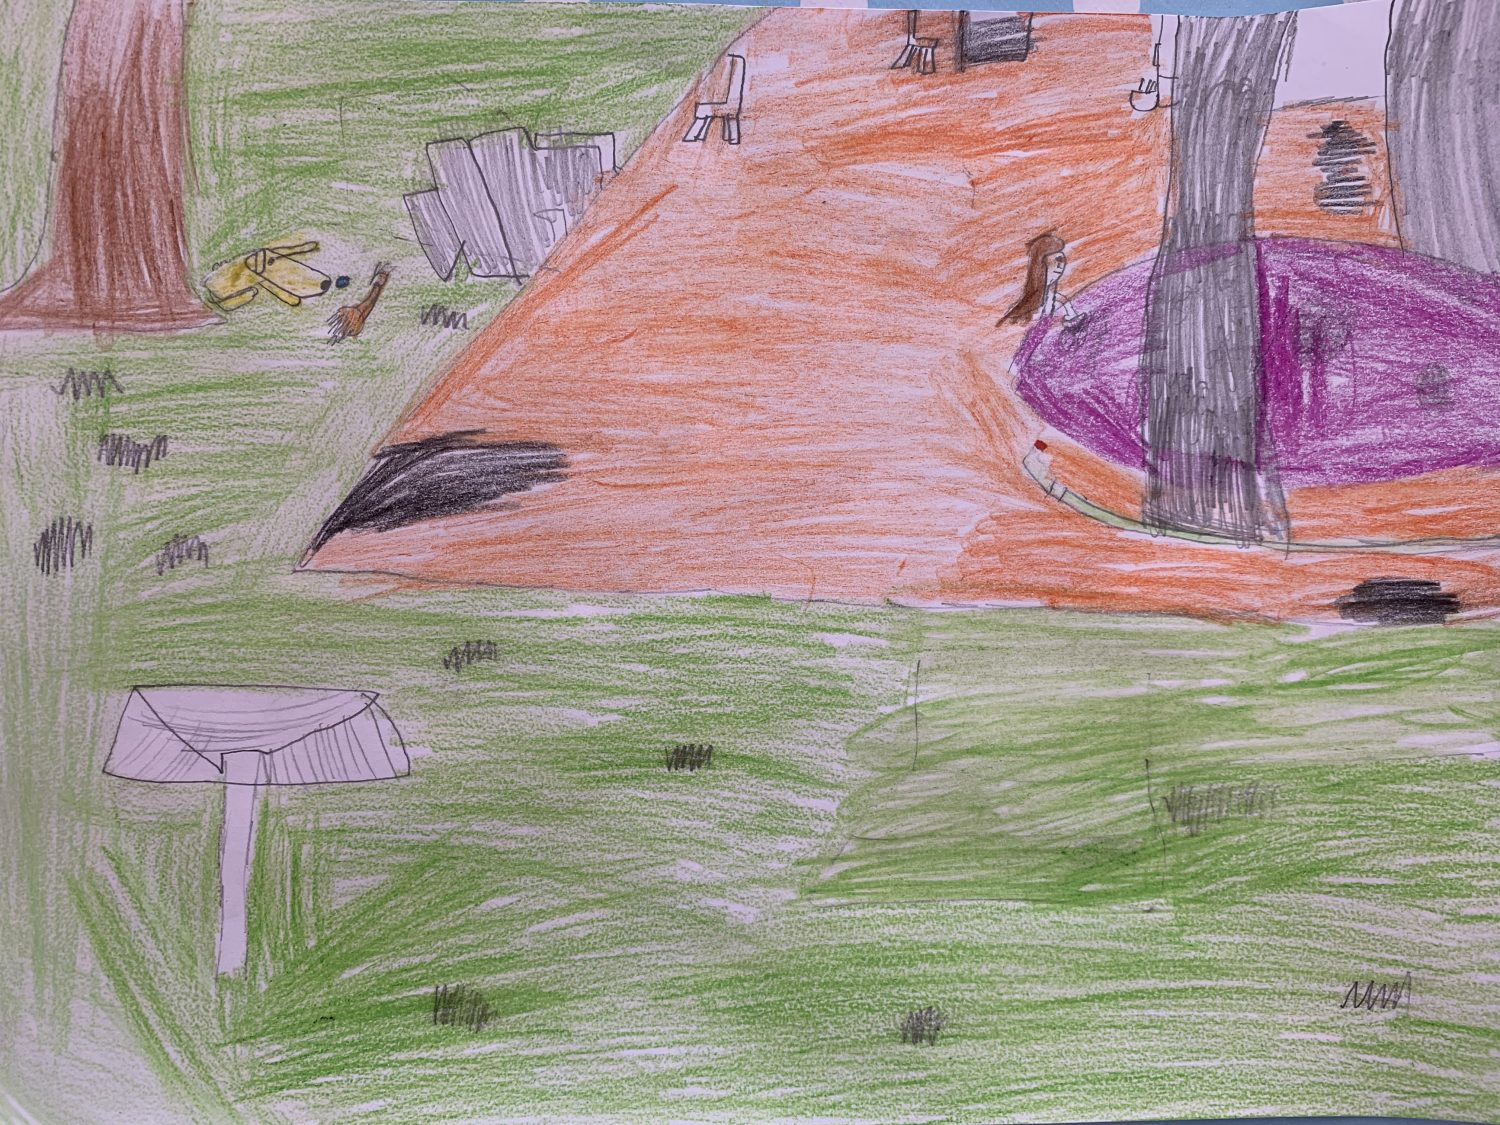 children's drawing In this picture I am cleaning out my dog Sally's pool because it had got a bit gunky. It is now clean as new. She now loves to lay down and cool off in it.